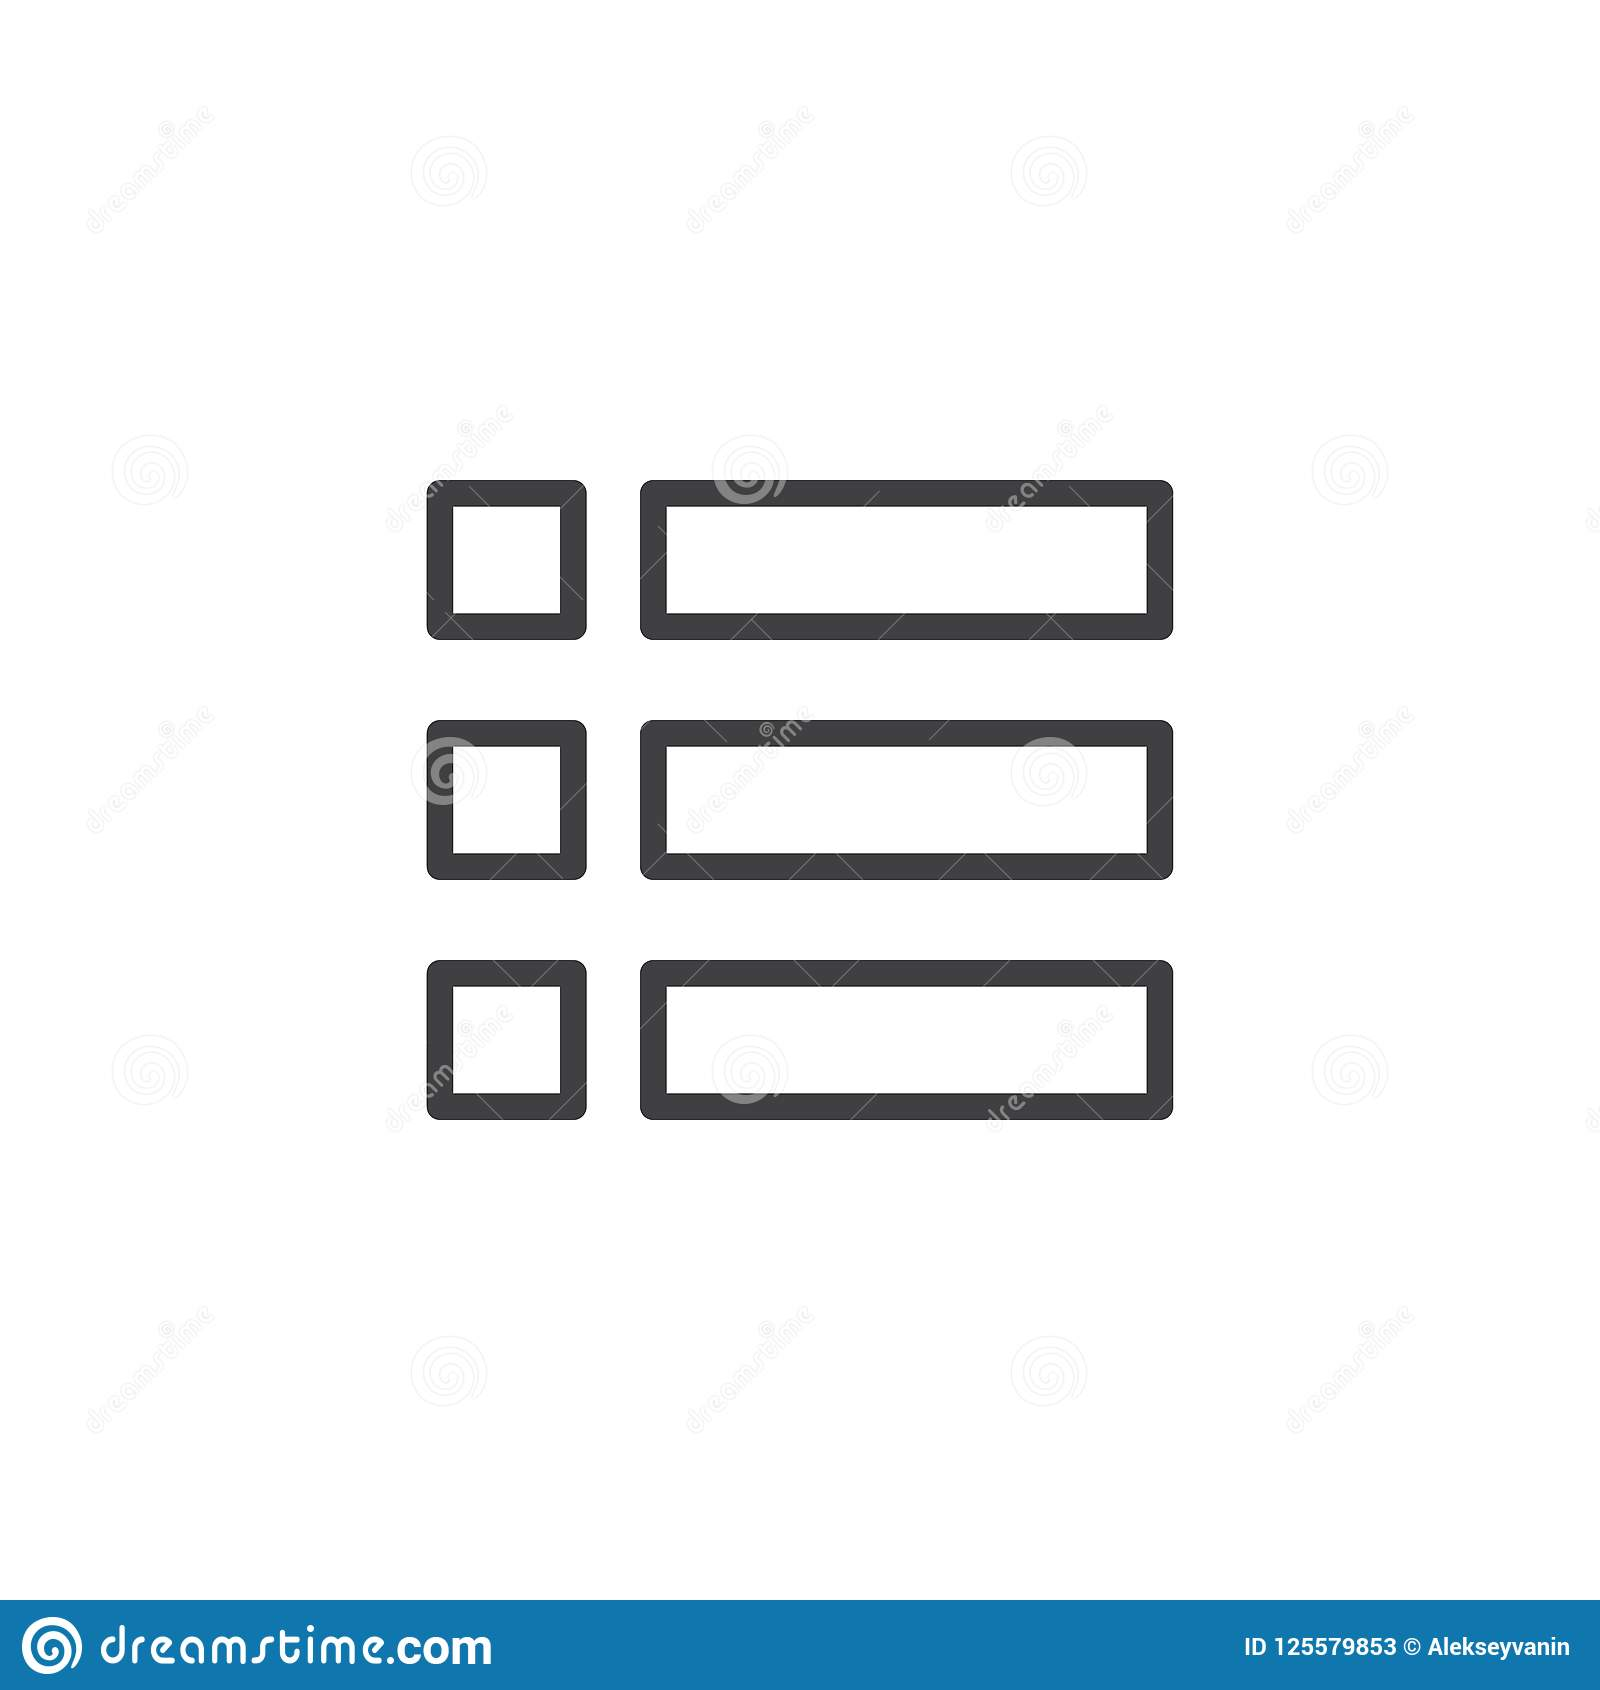 expand menu outline icon stock vector illustration of sign 125579853